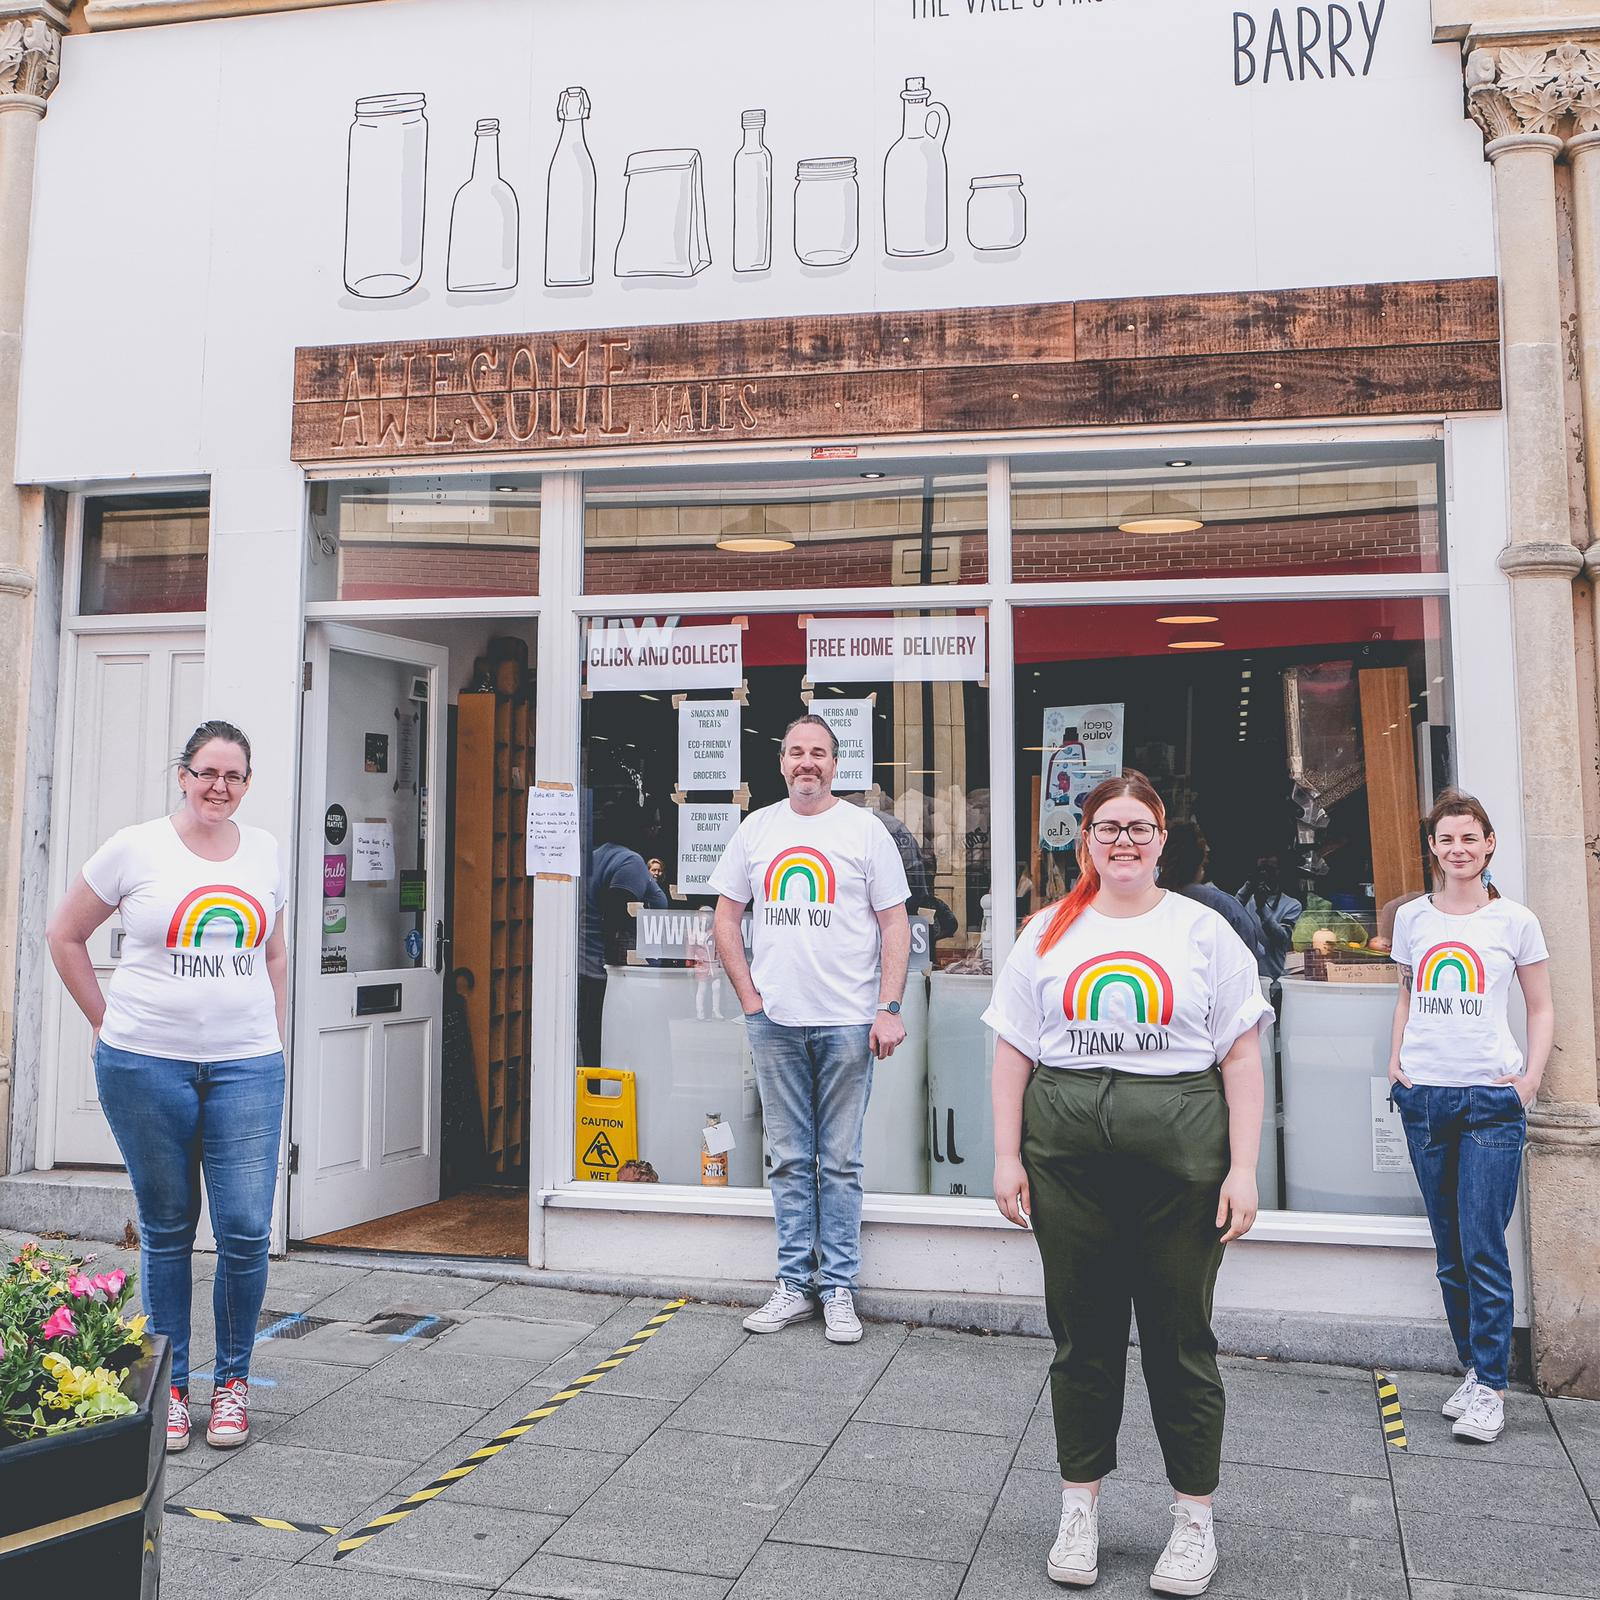 Awesome Wales staff stand outside the store front in NHS rainbow t-shirts